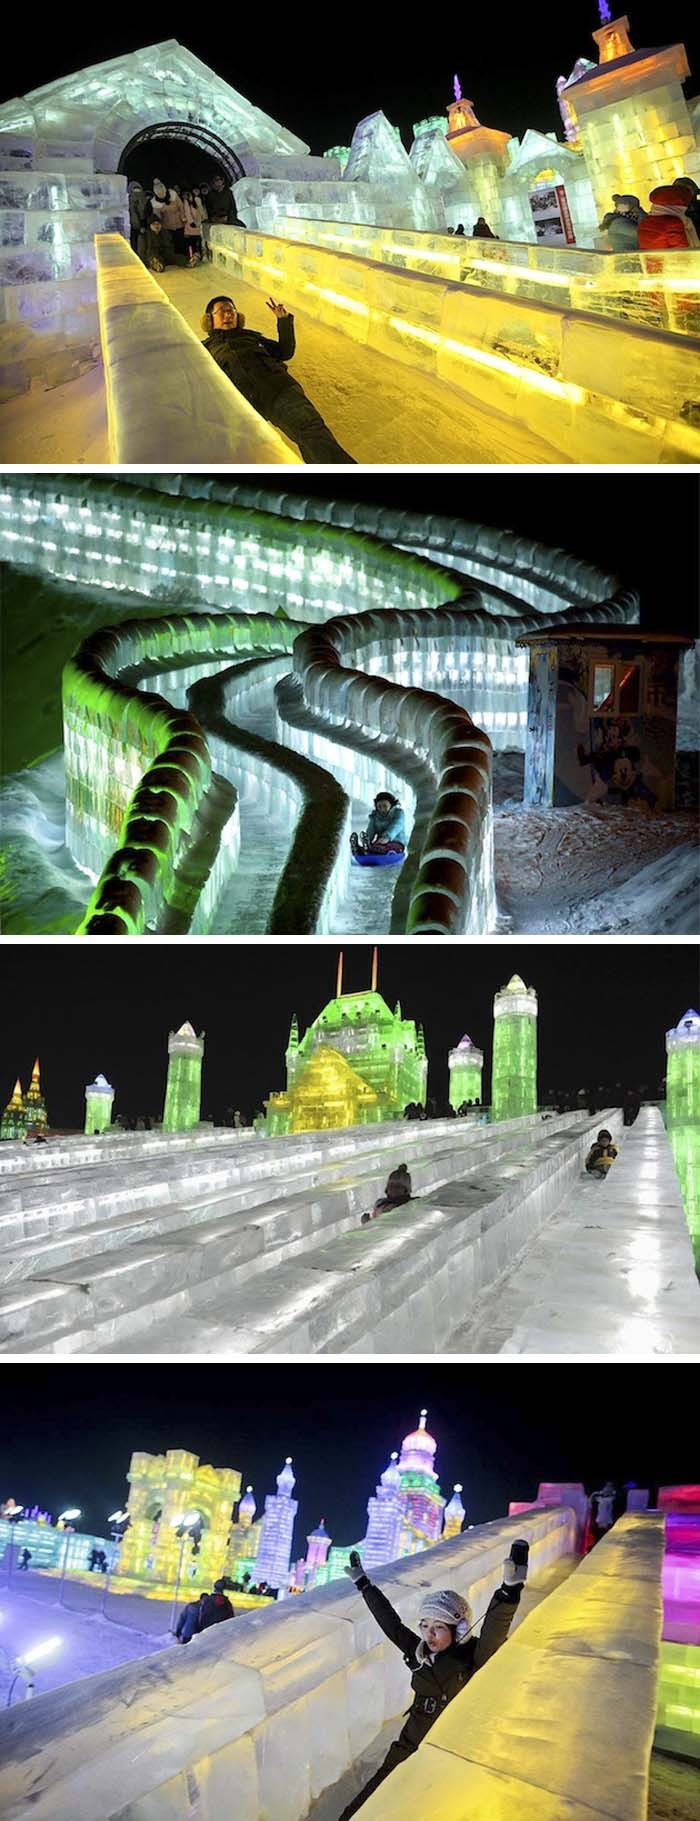 Harbin Ice Festival 2013 in China, Ice slides lit with LED's, Ice Castles with slides, cool and fun